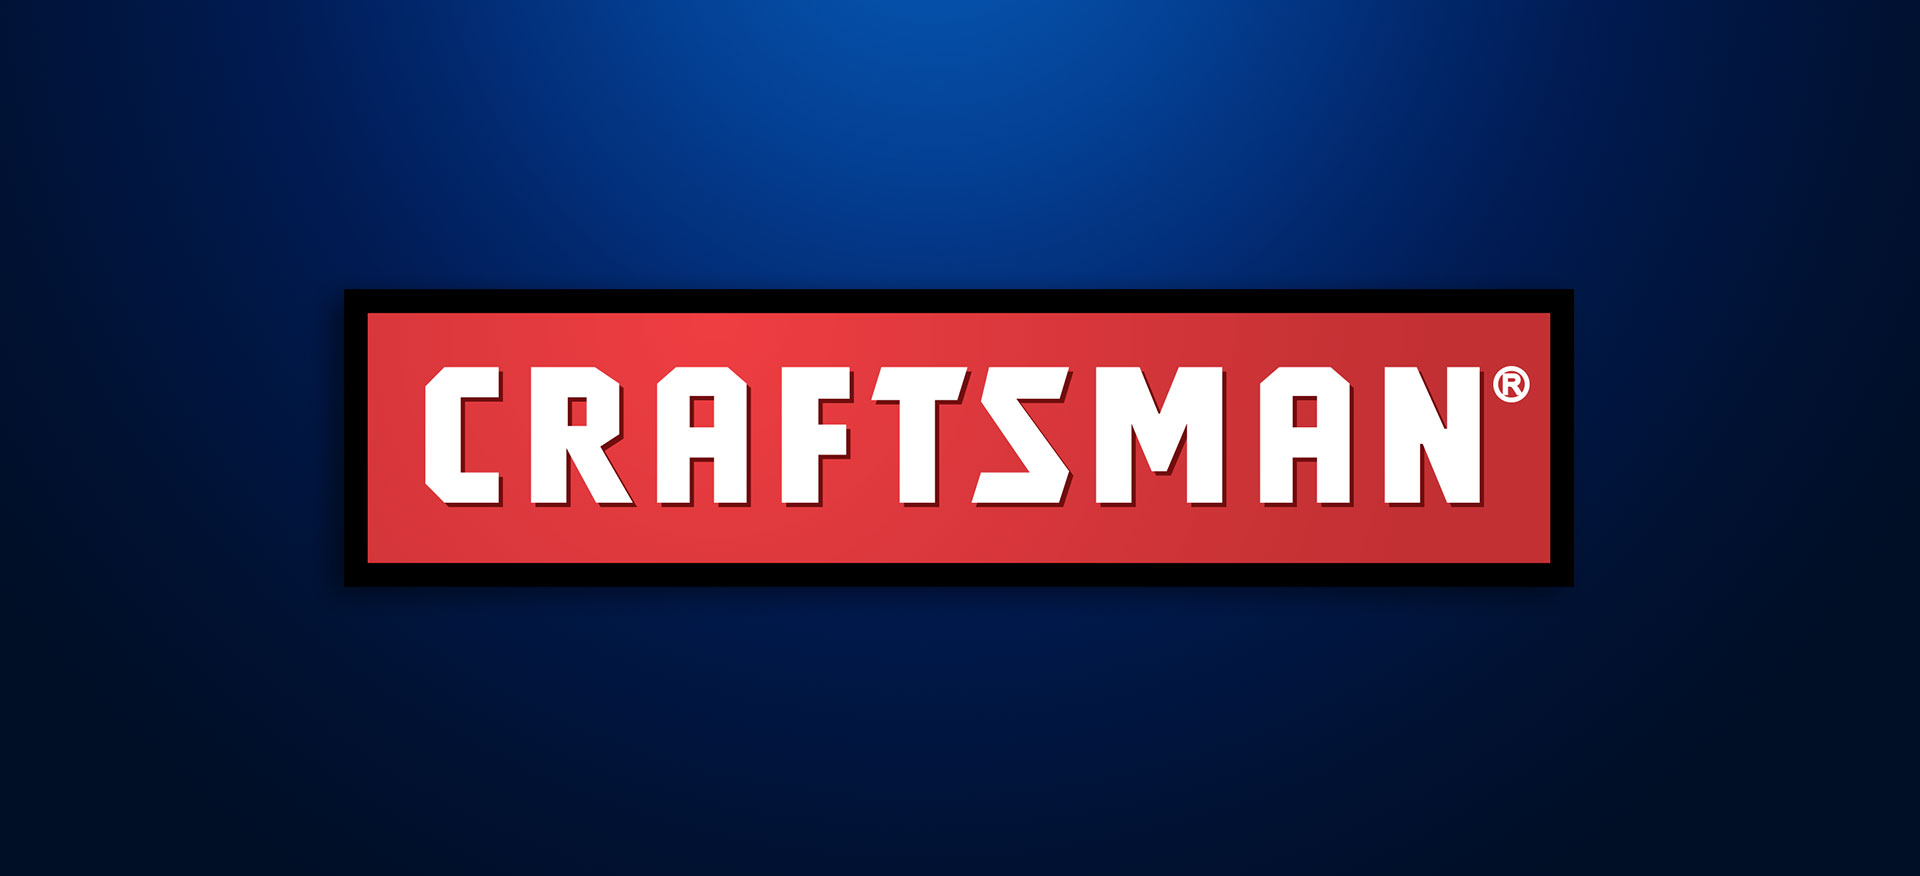 Sears To Sell Craftsman Tool Brand To Stanley Black & Decker